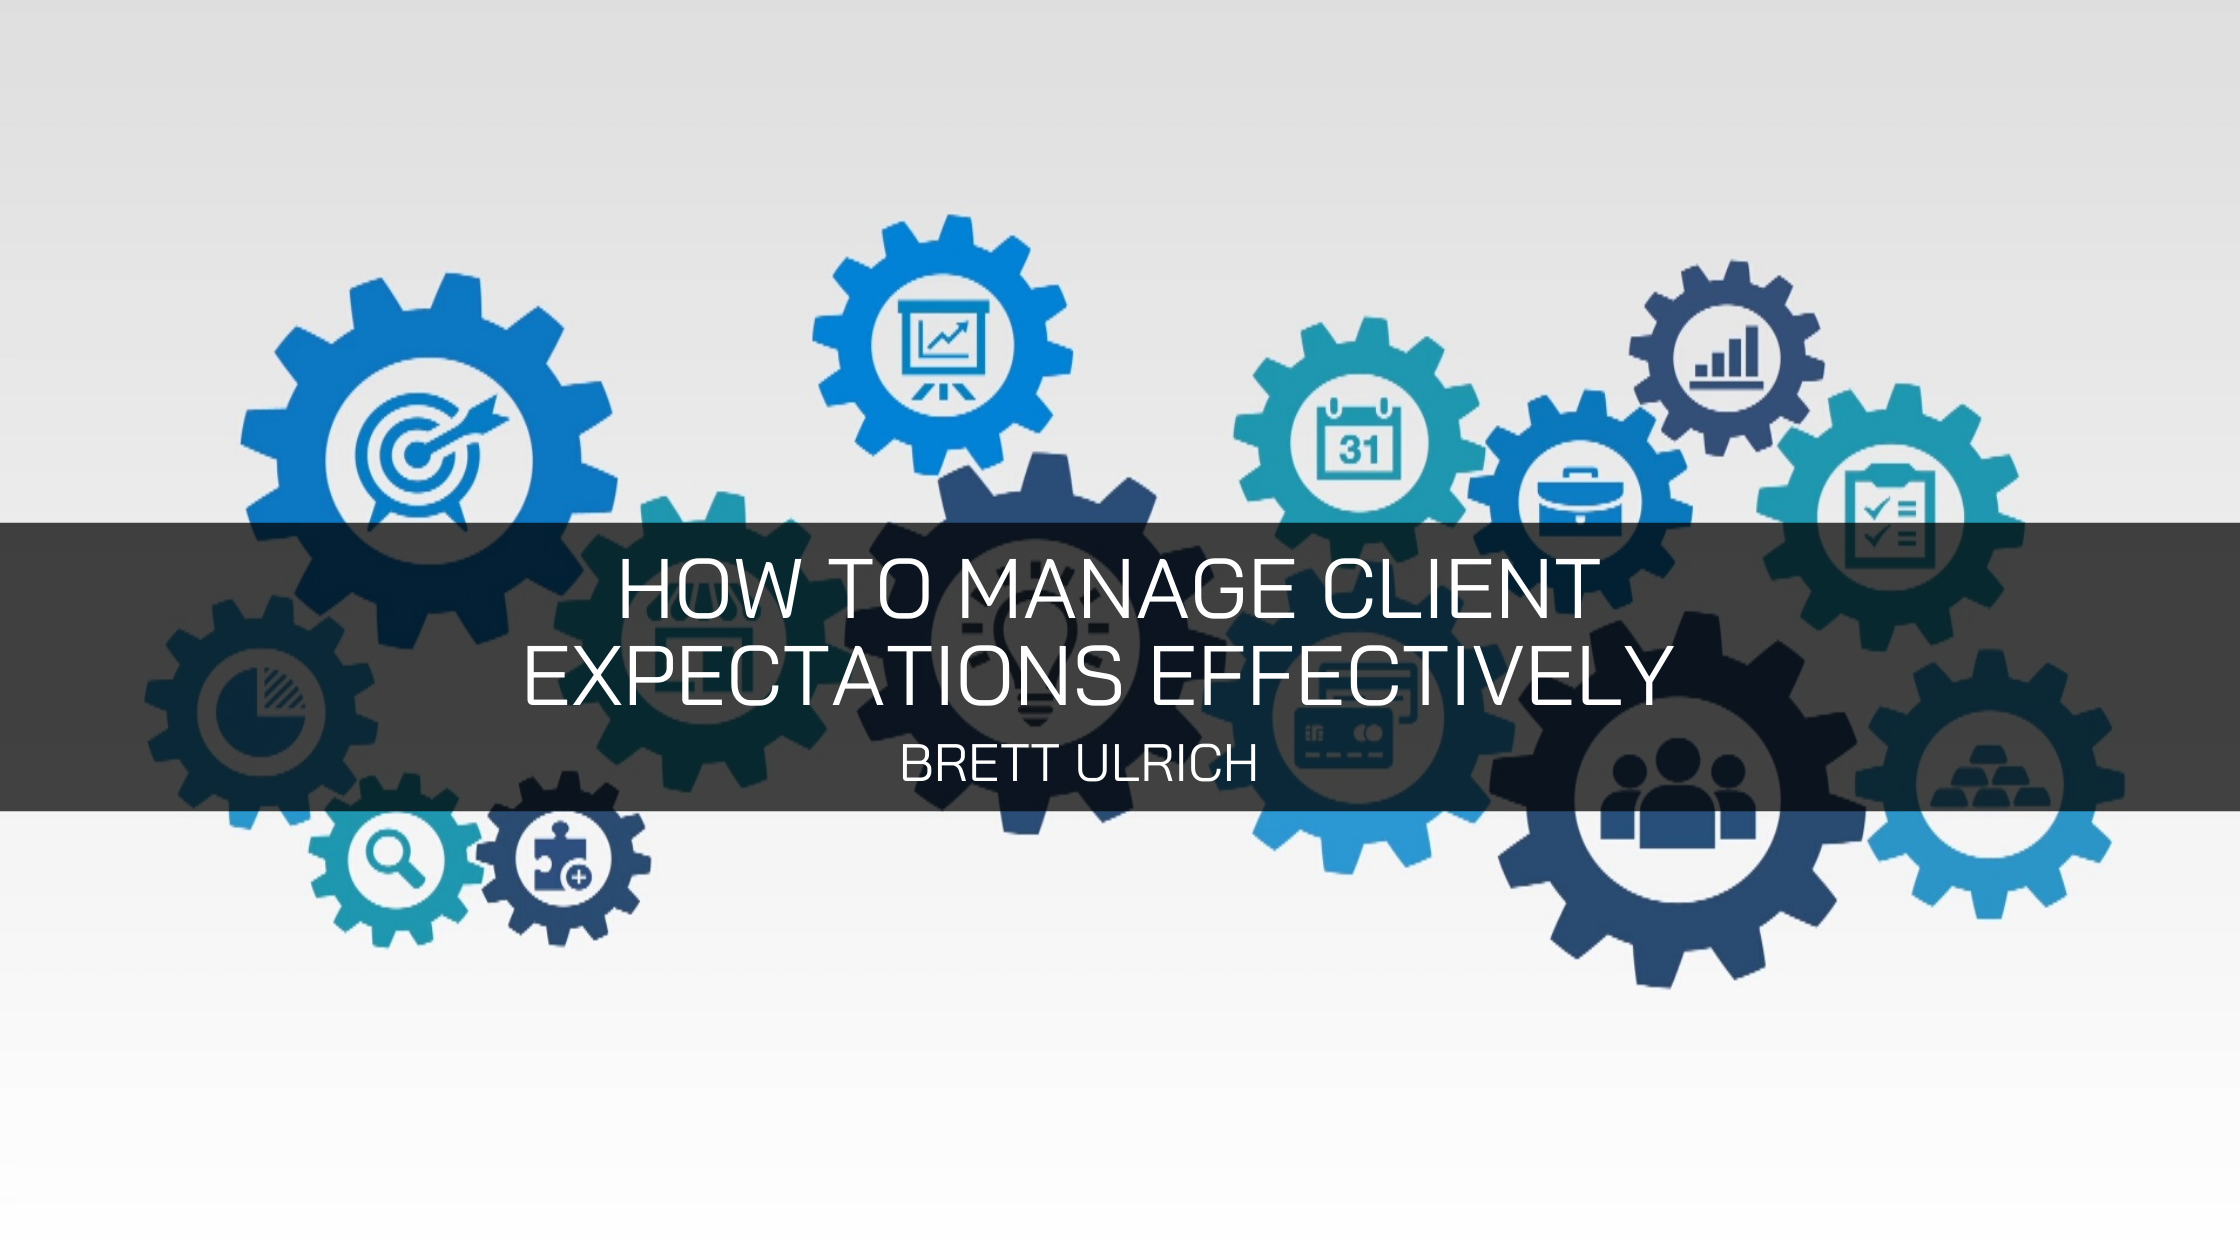 Brett Ulrich of Fredericksburg Talks About How to Manage Client Expectations Effectively